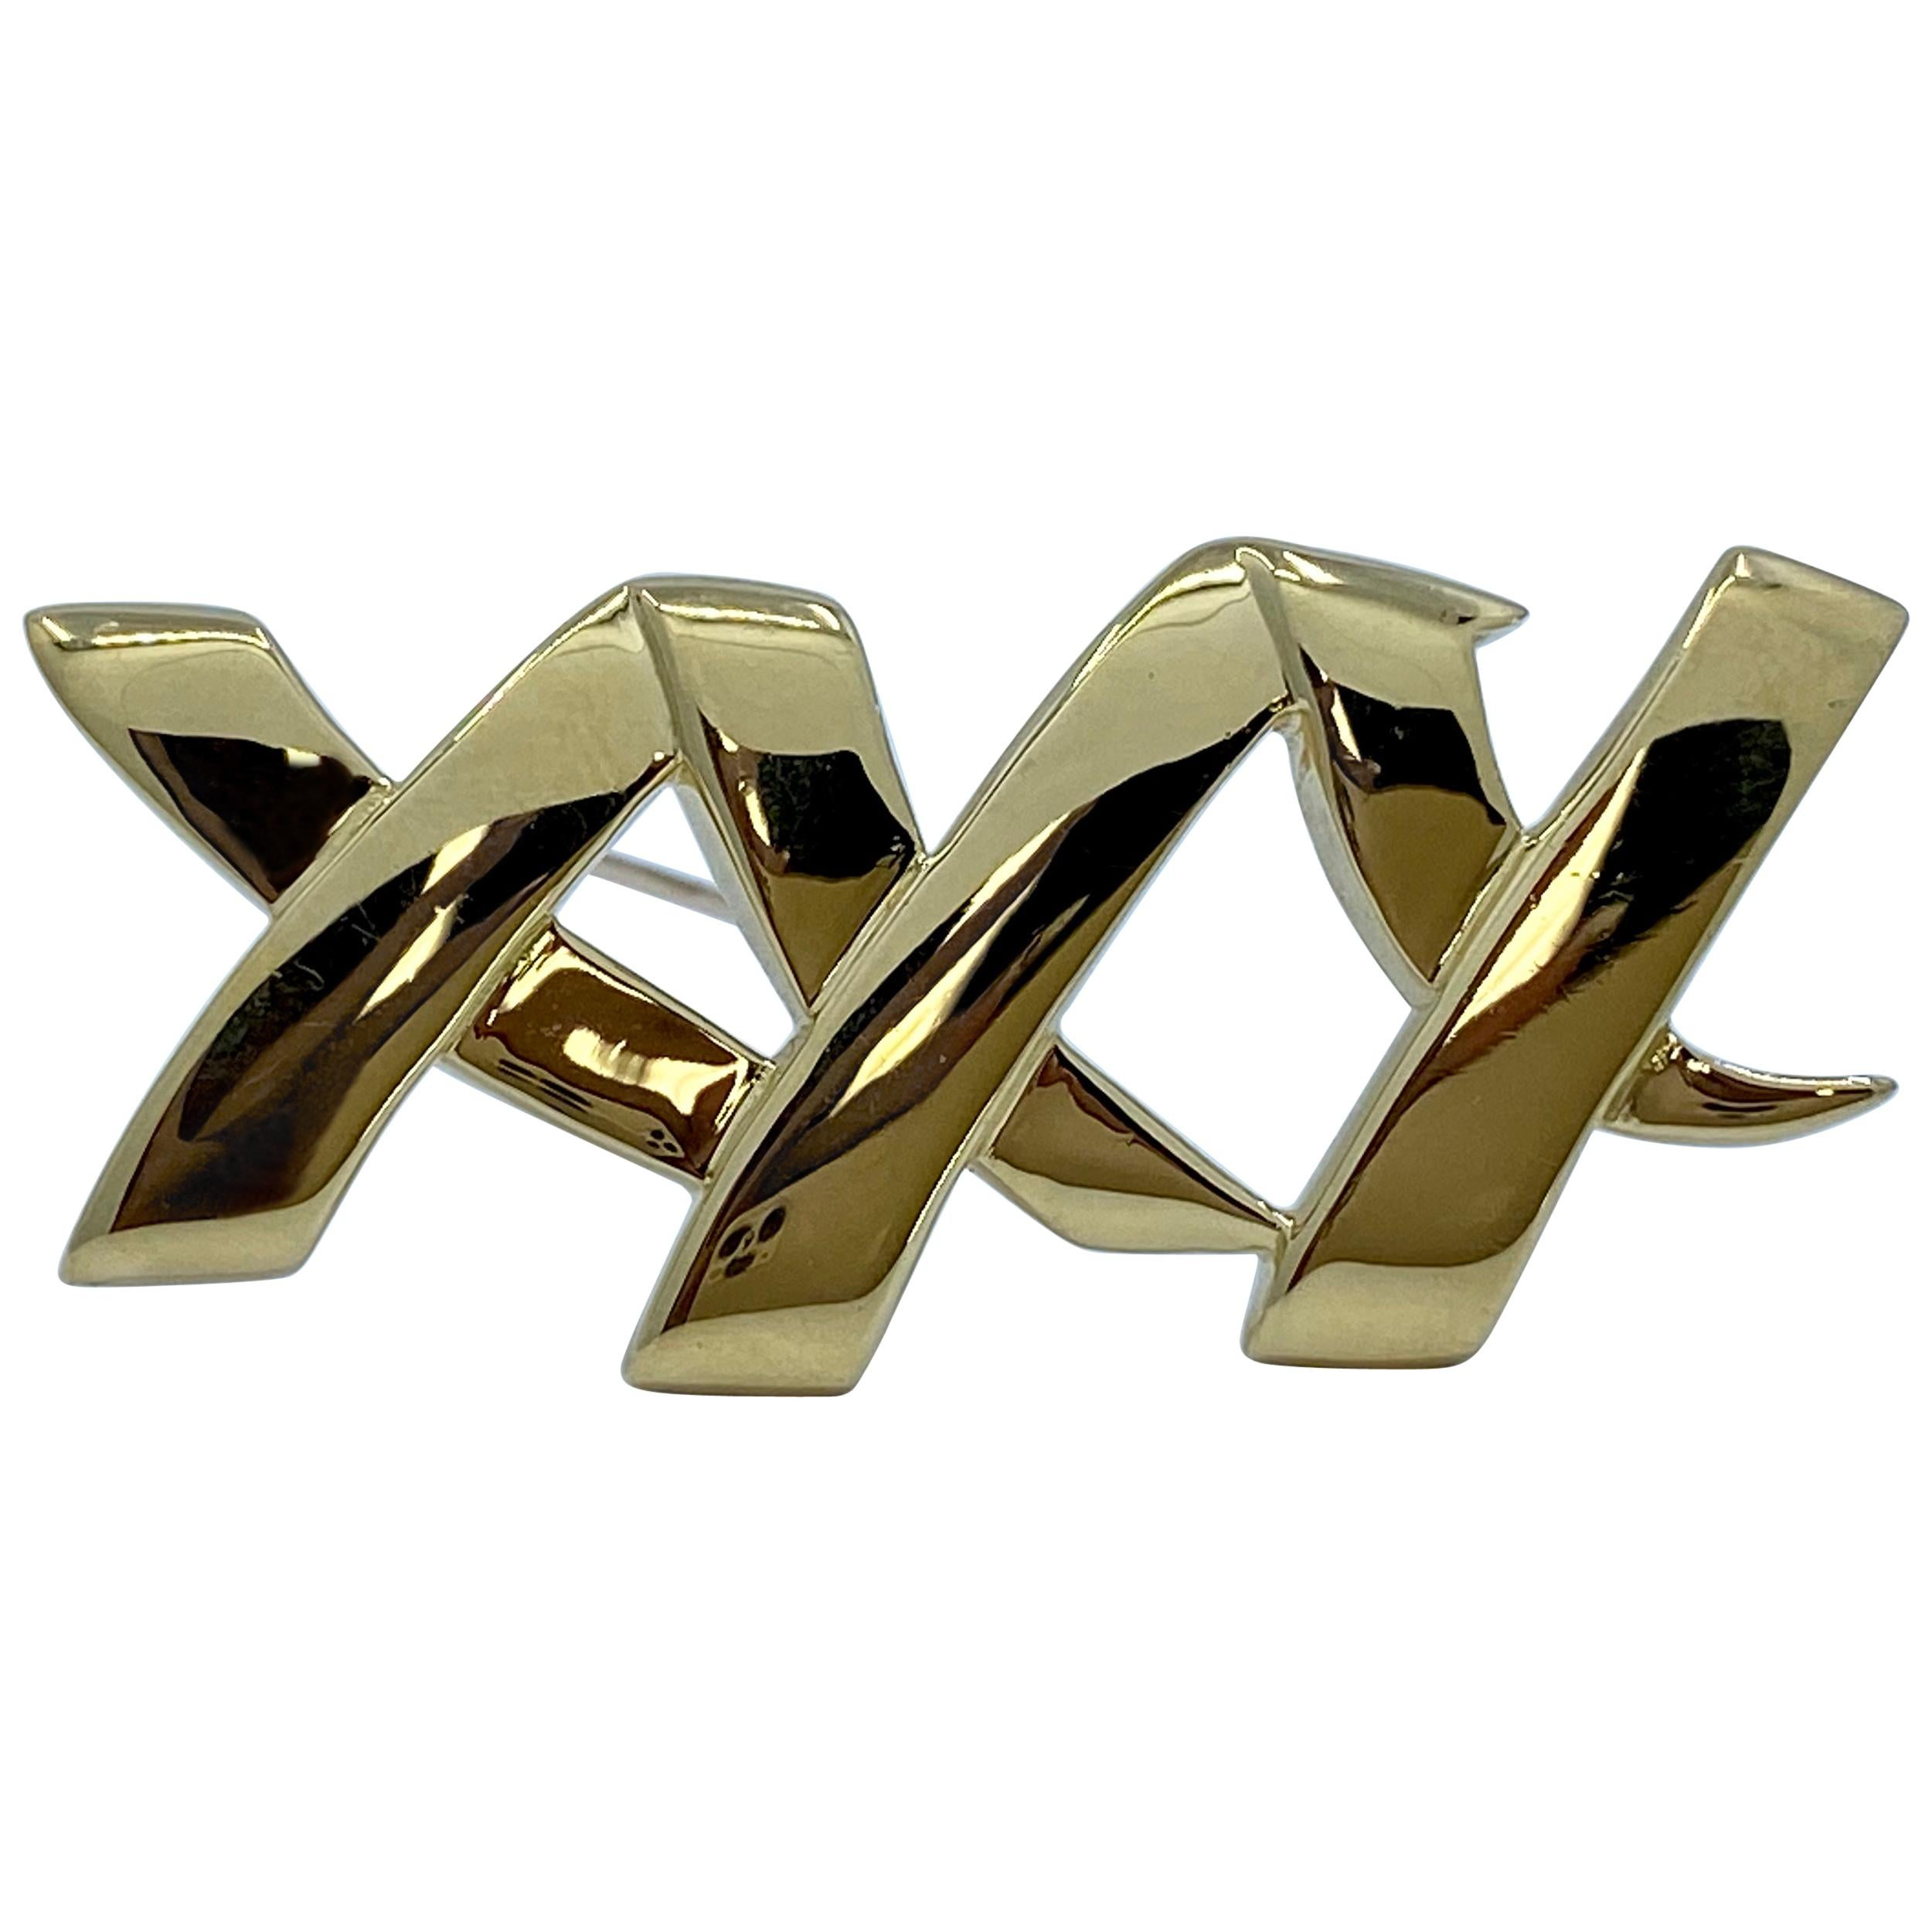 Iconic Tiffany & Co Paloma Picasso XXX Kisses Brooch Pin in 18 Karat Yellow Gold